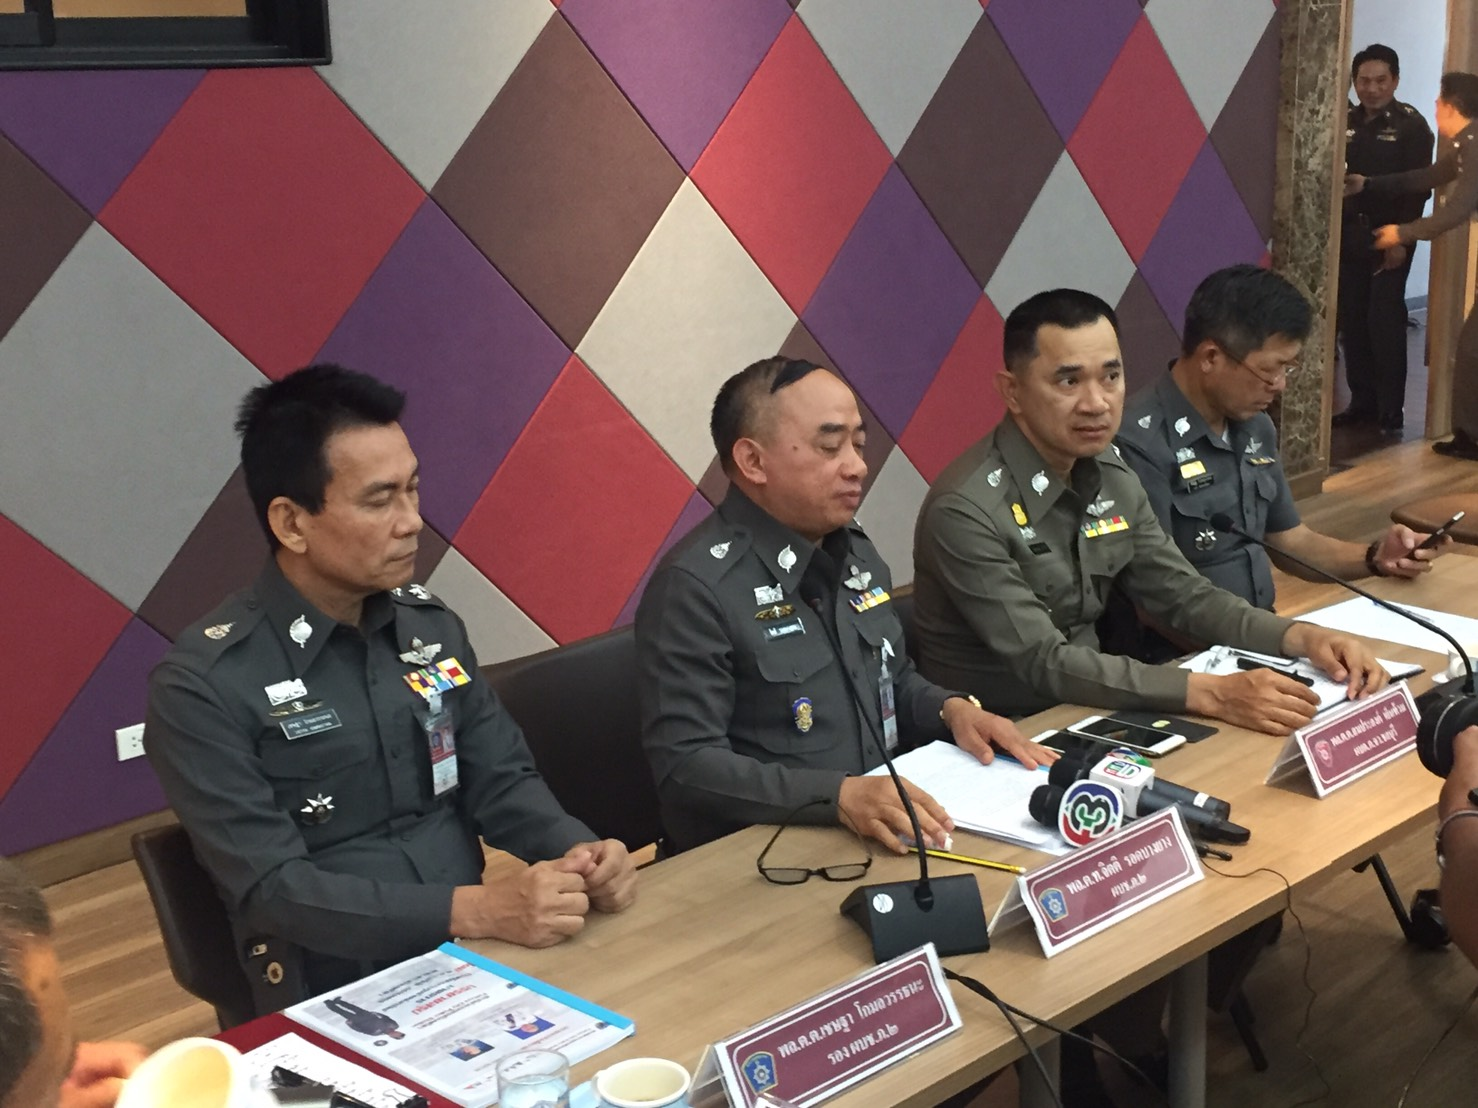 Pol. Lt. Gen. Jithi Rodbangyang, commander of Region 2 Police, announces the Safety Zone project to make Pattaya a safer place.